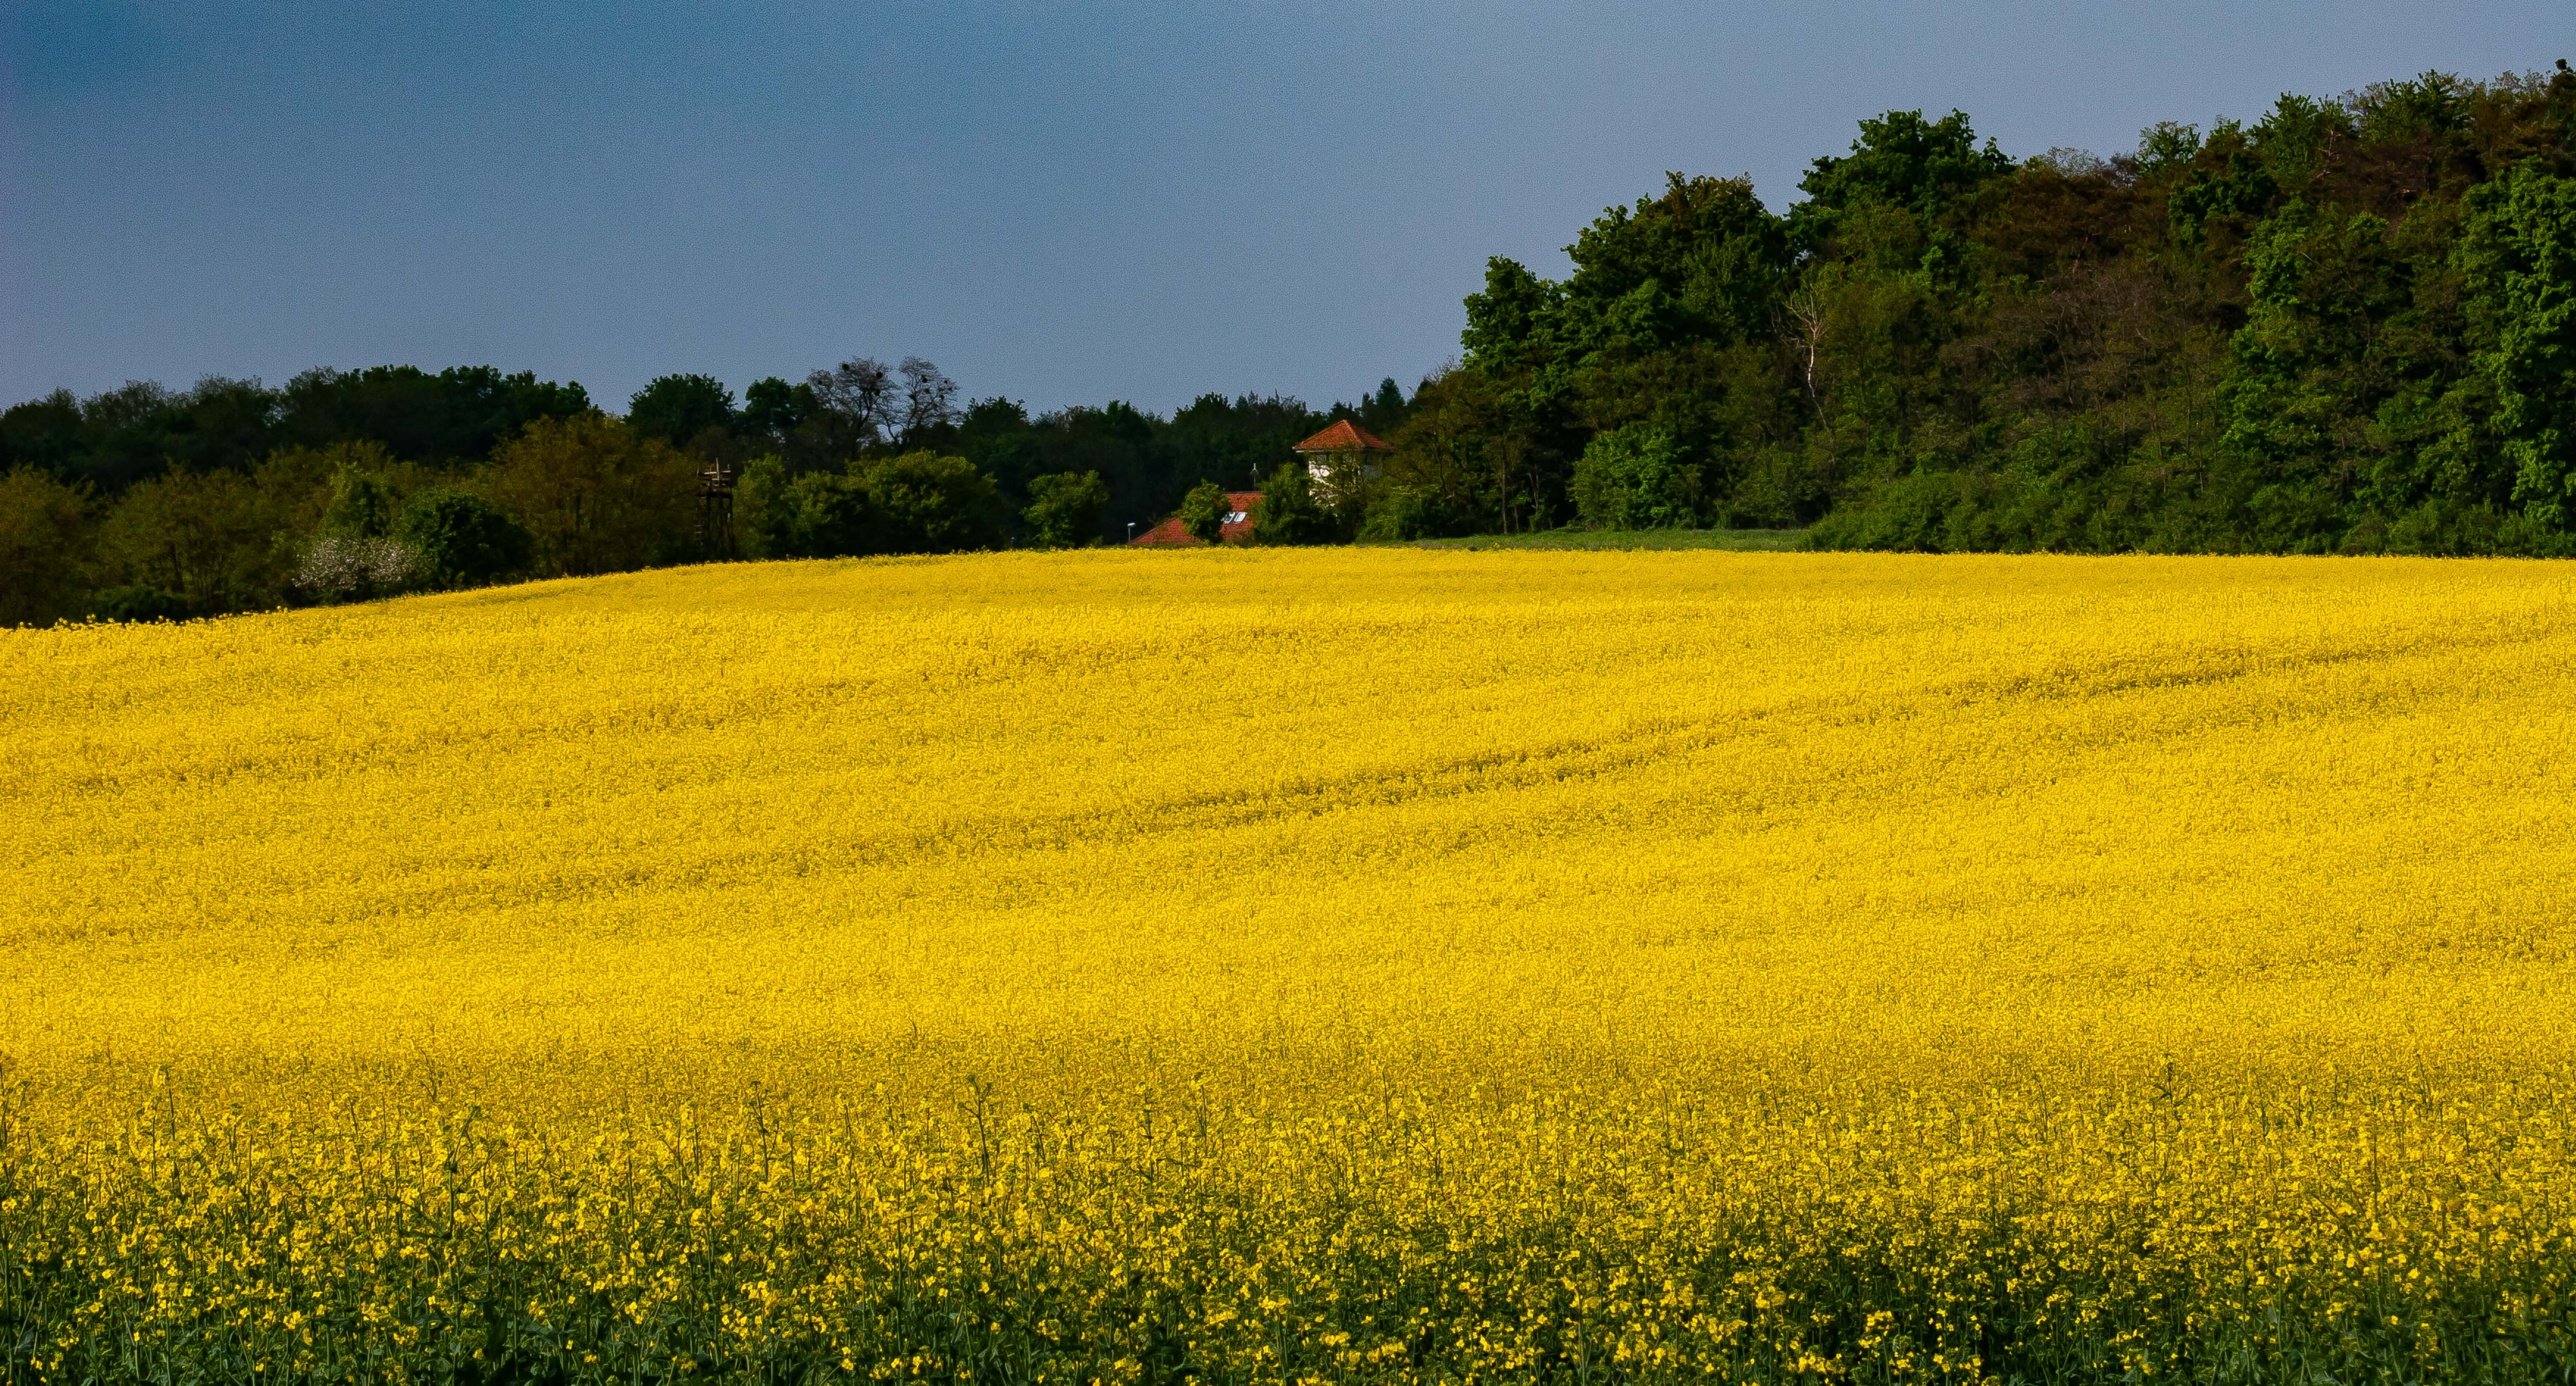 Slovenia, Moravske Toplice Prov, Field Of Yellow, 2006, IMG 5211